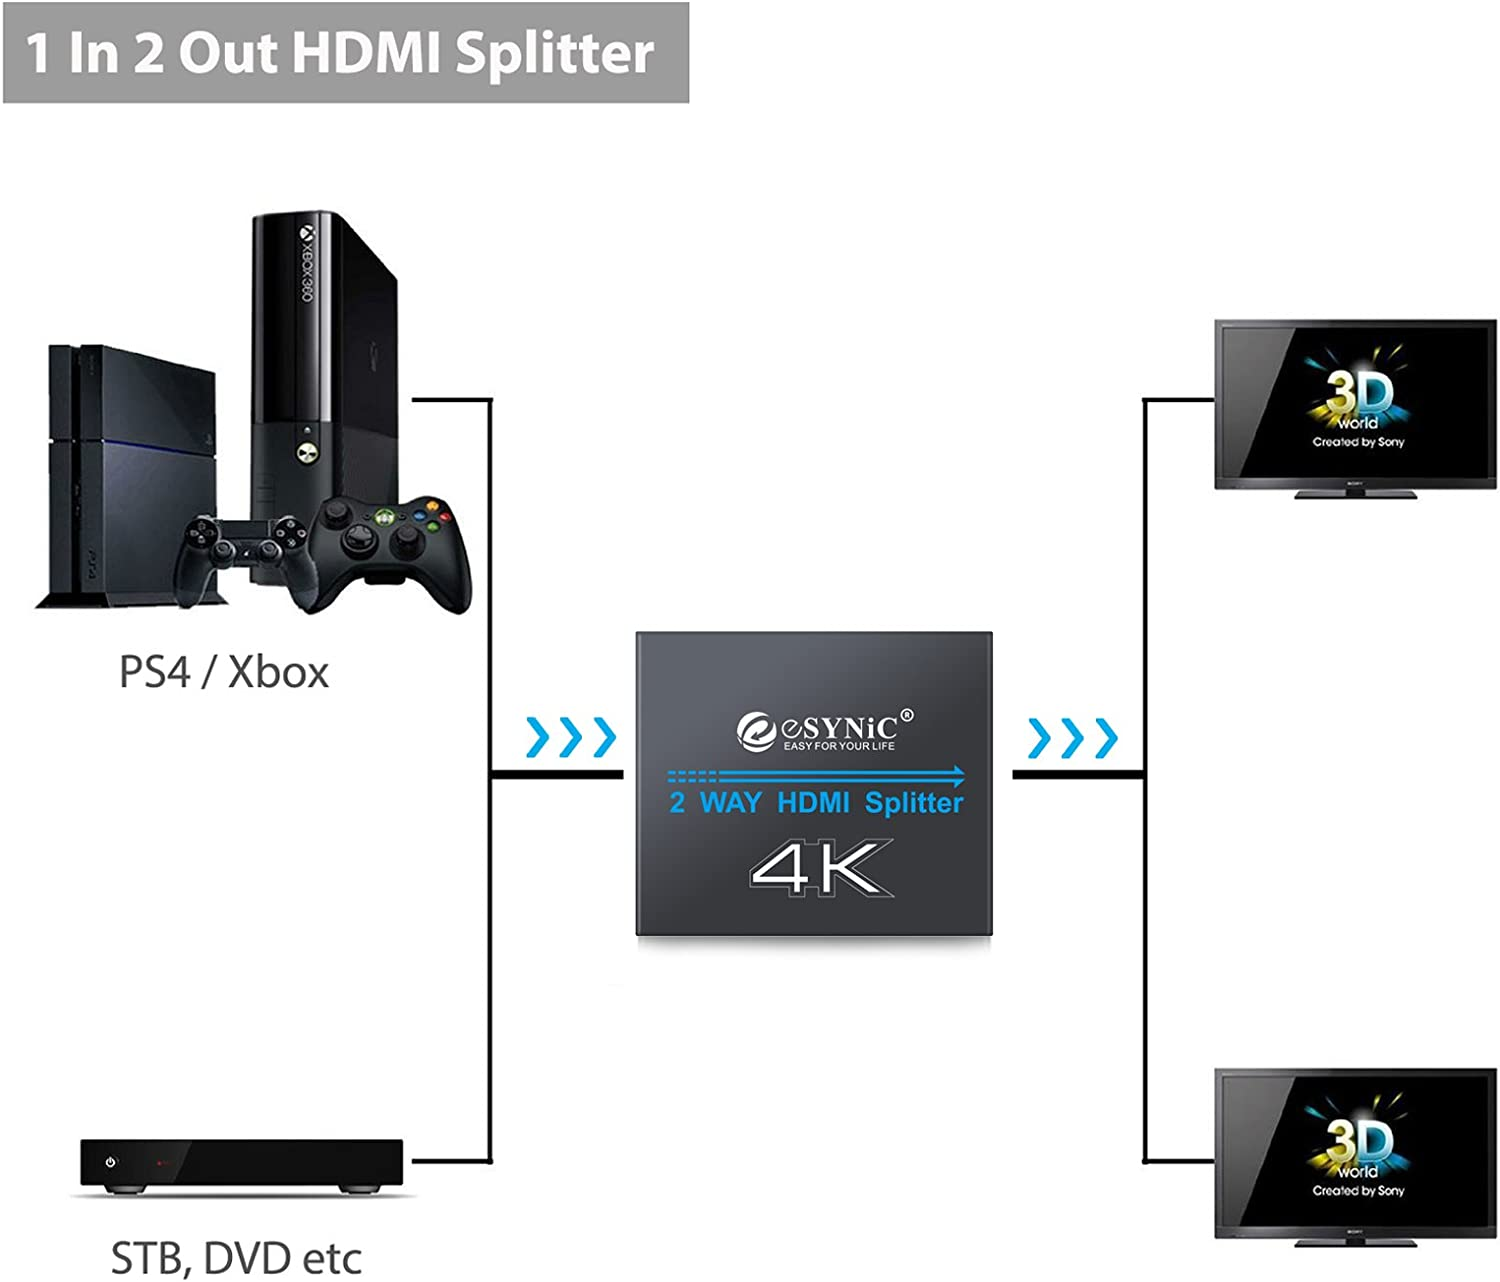 eSynic 1x2 HDMI Splitter 4K HDMI Splitter 1 in 2 Out HDMI Amplifier Adapter Aluminum Ver 1.4 HDCP with Power Adapter Supports 3D 4K@30HZ Full HD1080P for PC PS3 PS4 Blu-ray Player Apple TV HDTV